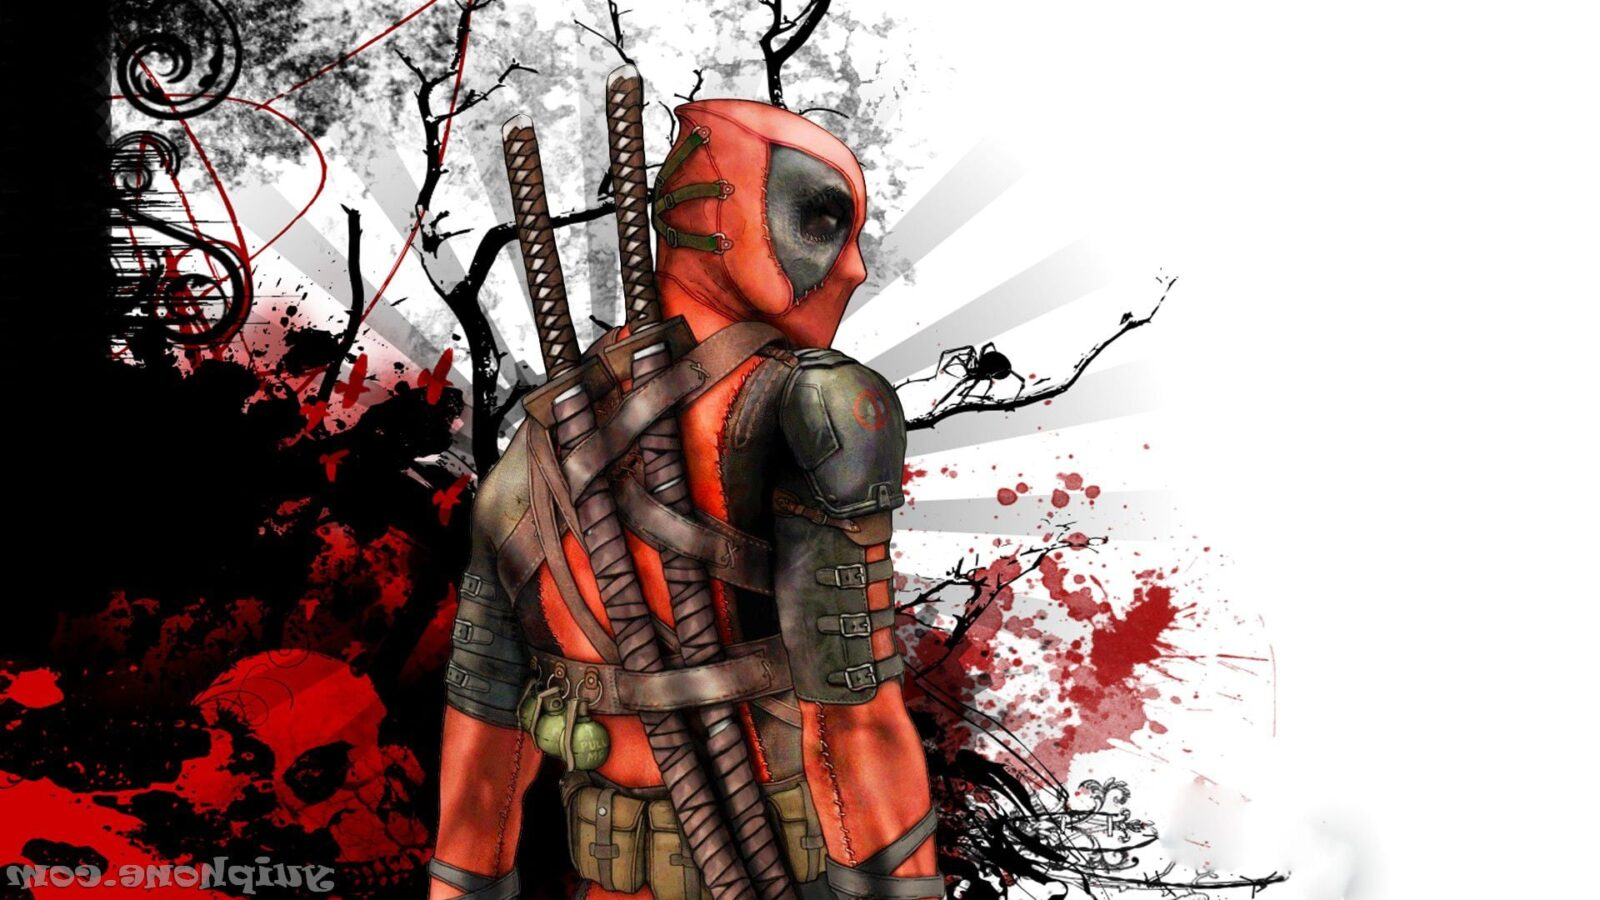 deadpool full hd wallpaper for pc